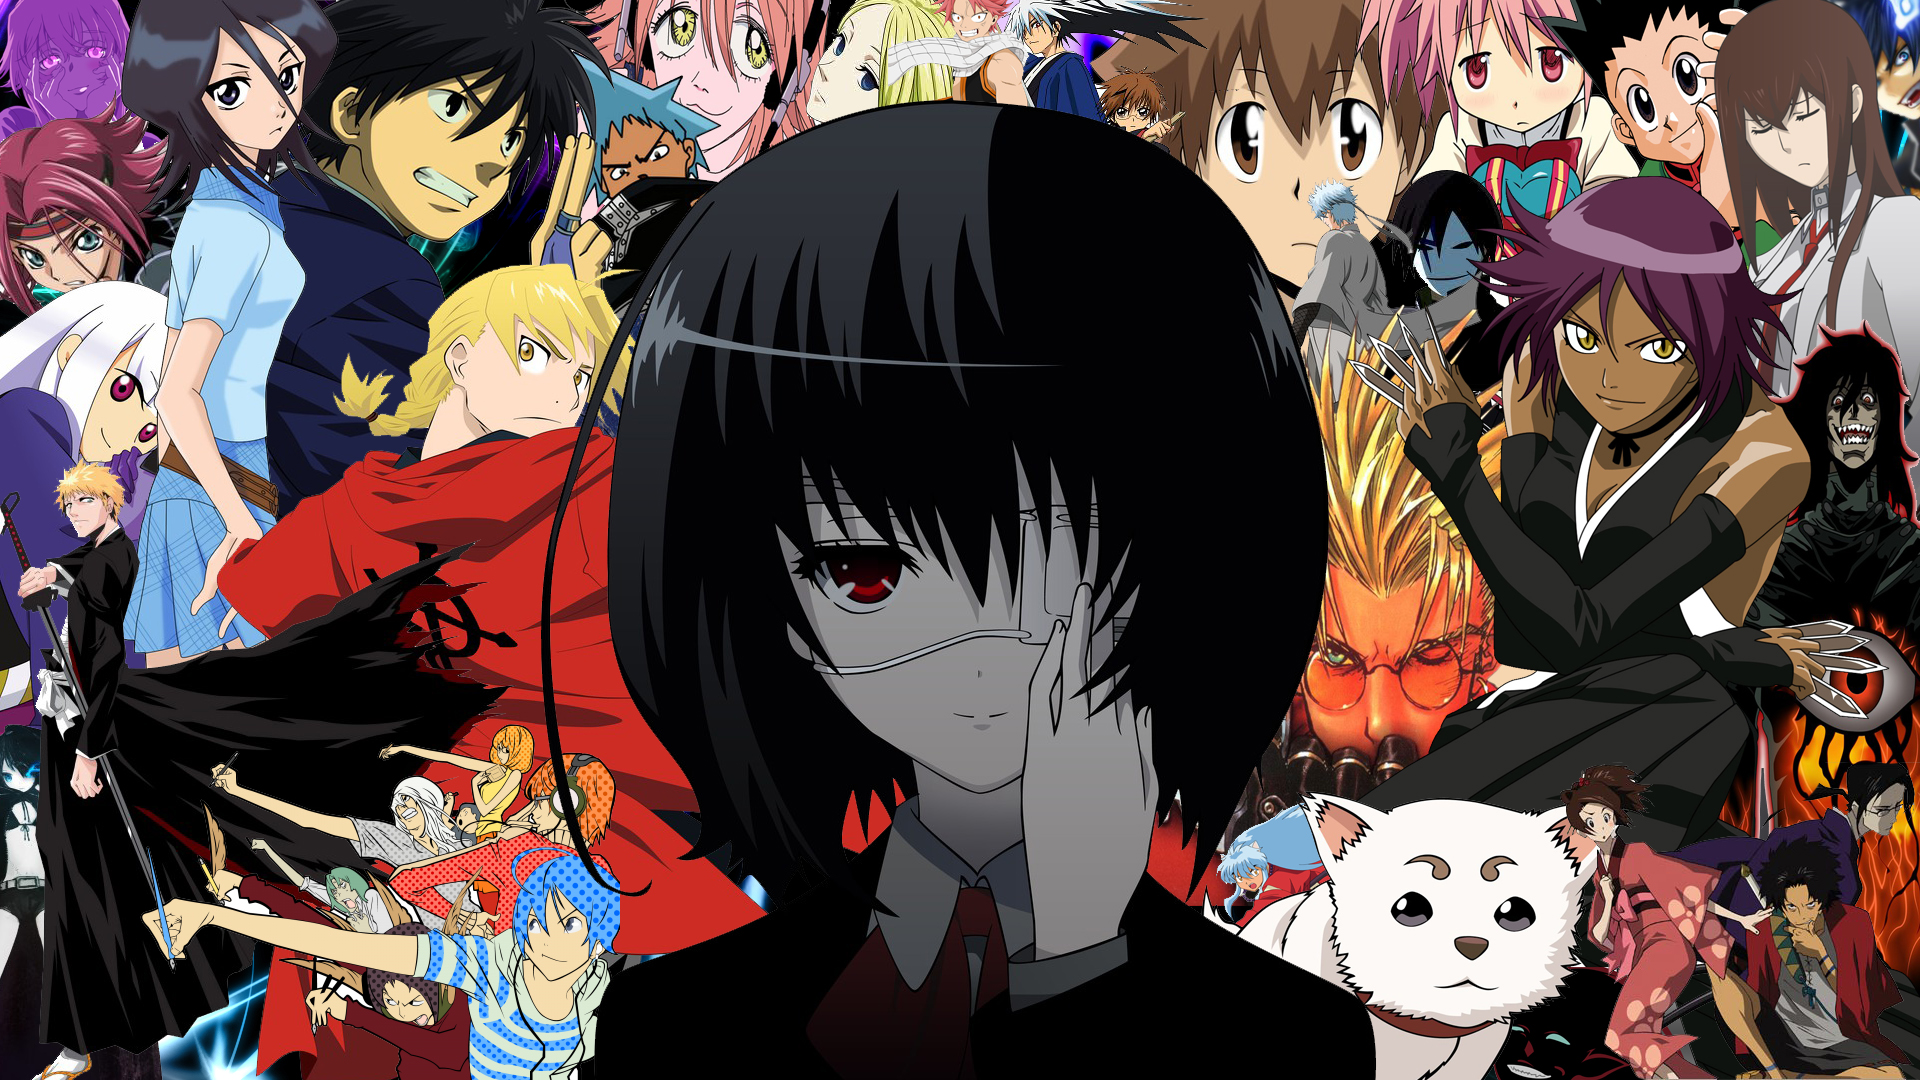 Anime Mix By Namesalreadyclaimed Anime Mix By Namesalreadyclaimed